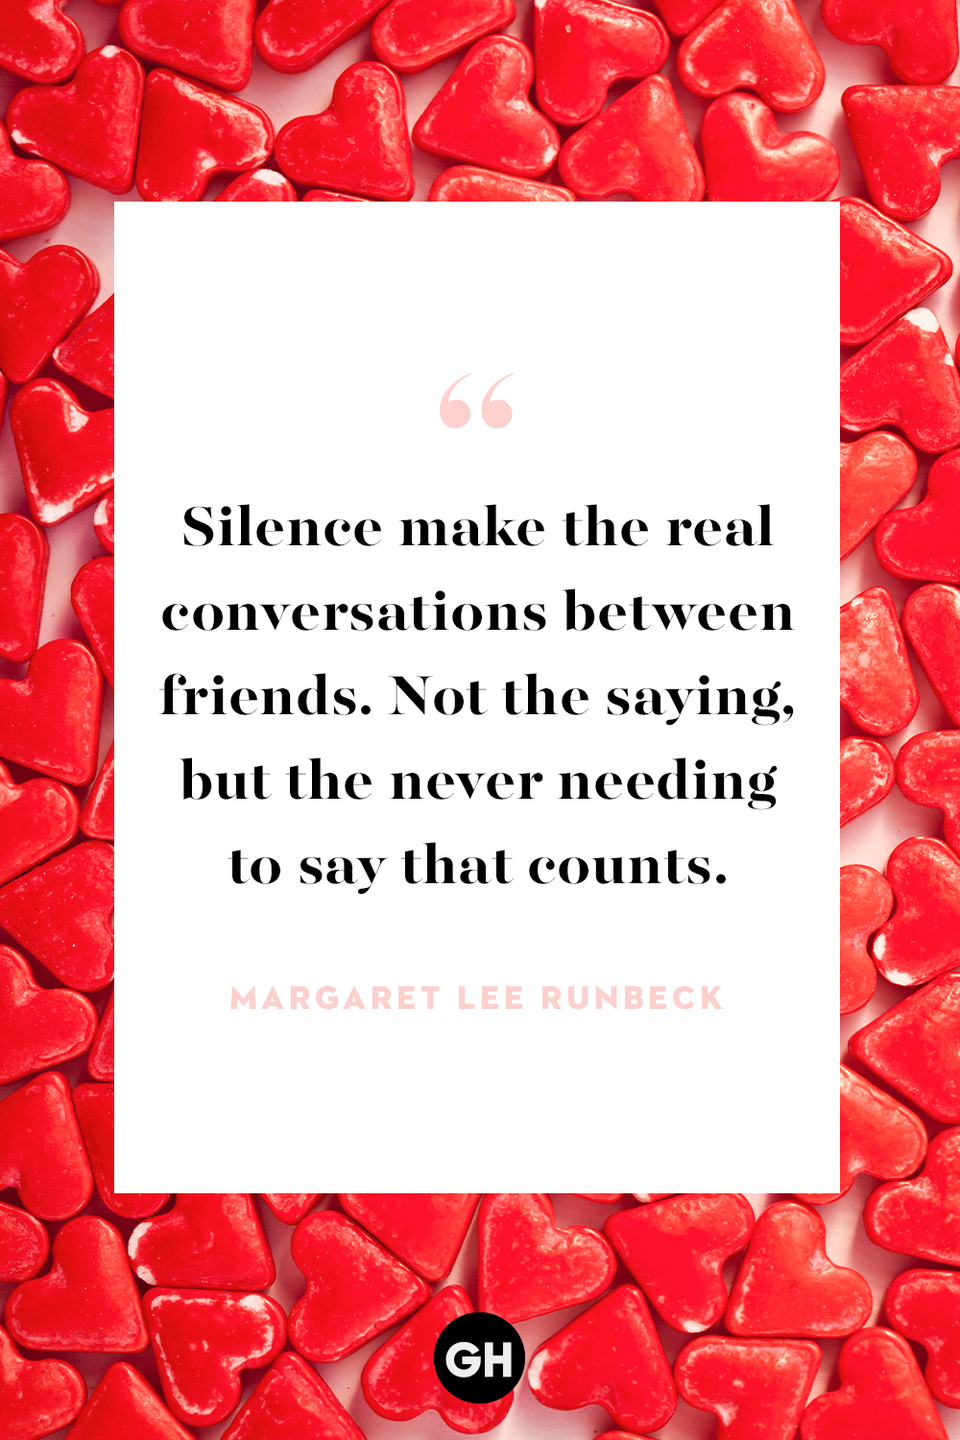 <p>Silence make the real conversations between friends. Not the saying, but the never needing to say that counts. </p>